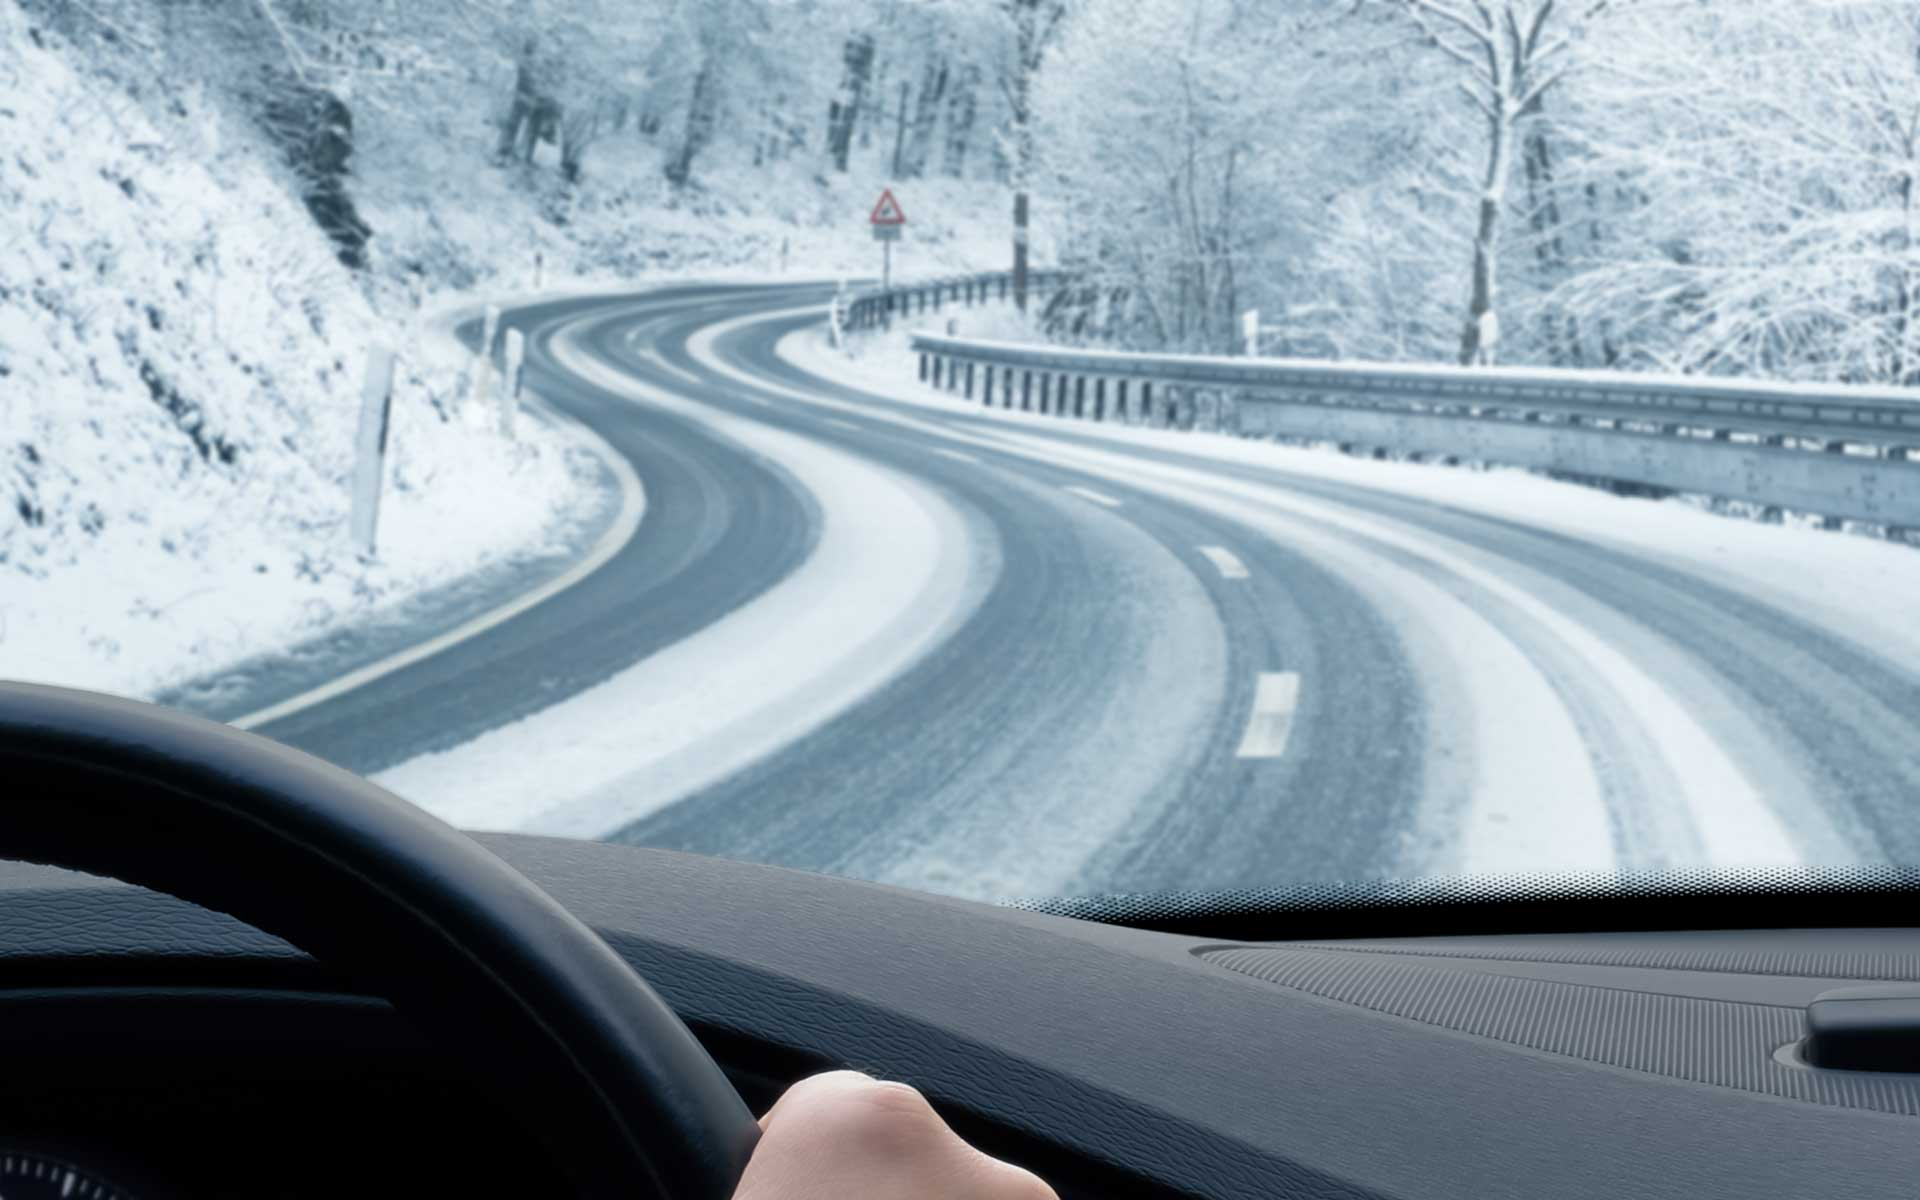 Driving on a curvy road in the winter with snow and possibly ice